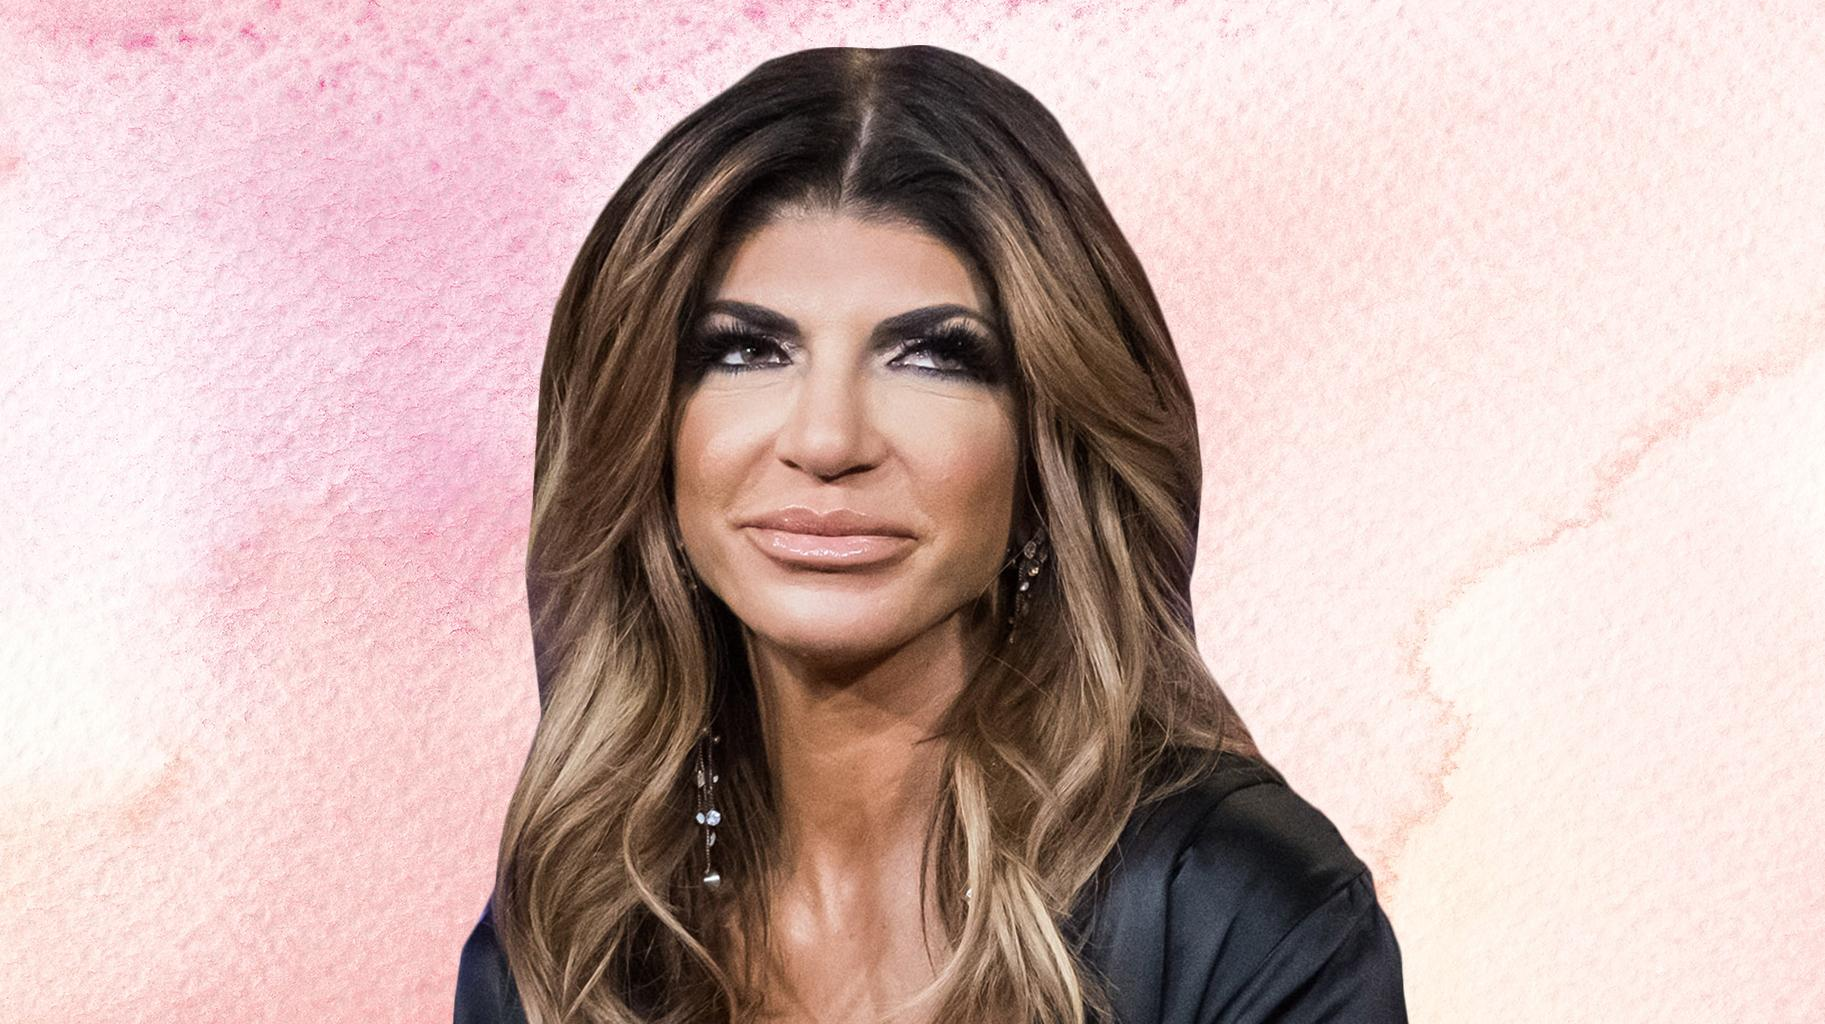 Teresa Giudice Shows Off Her Natural Beauty With No-Makeup Video And Fans Gush Over Her Stunning Looks!